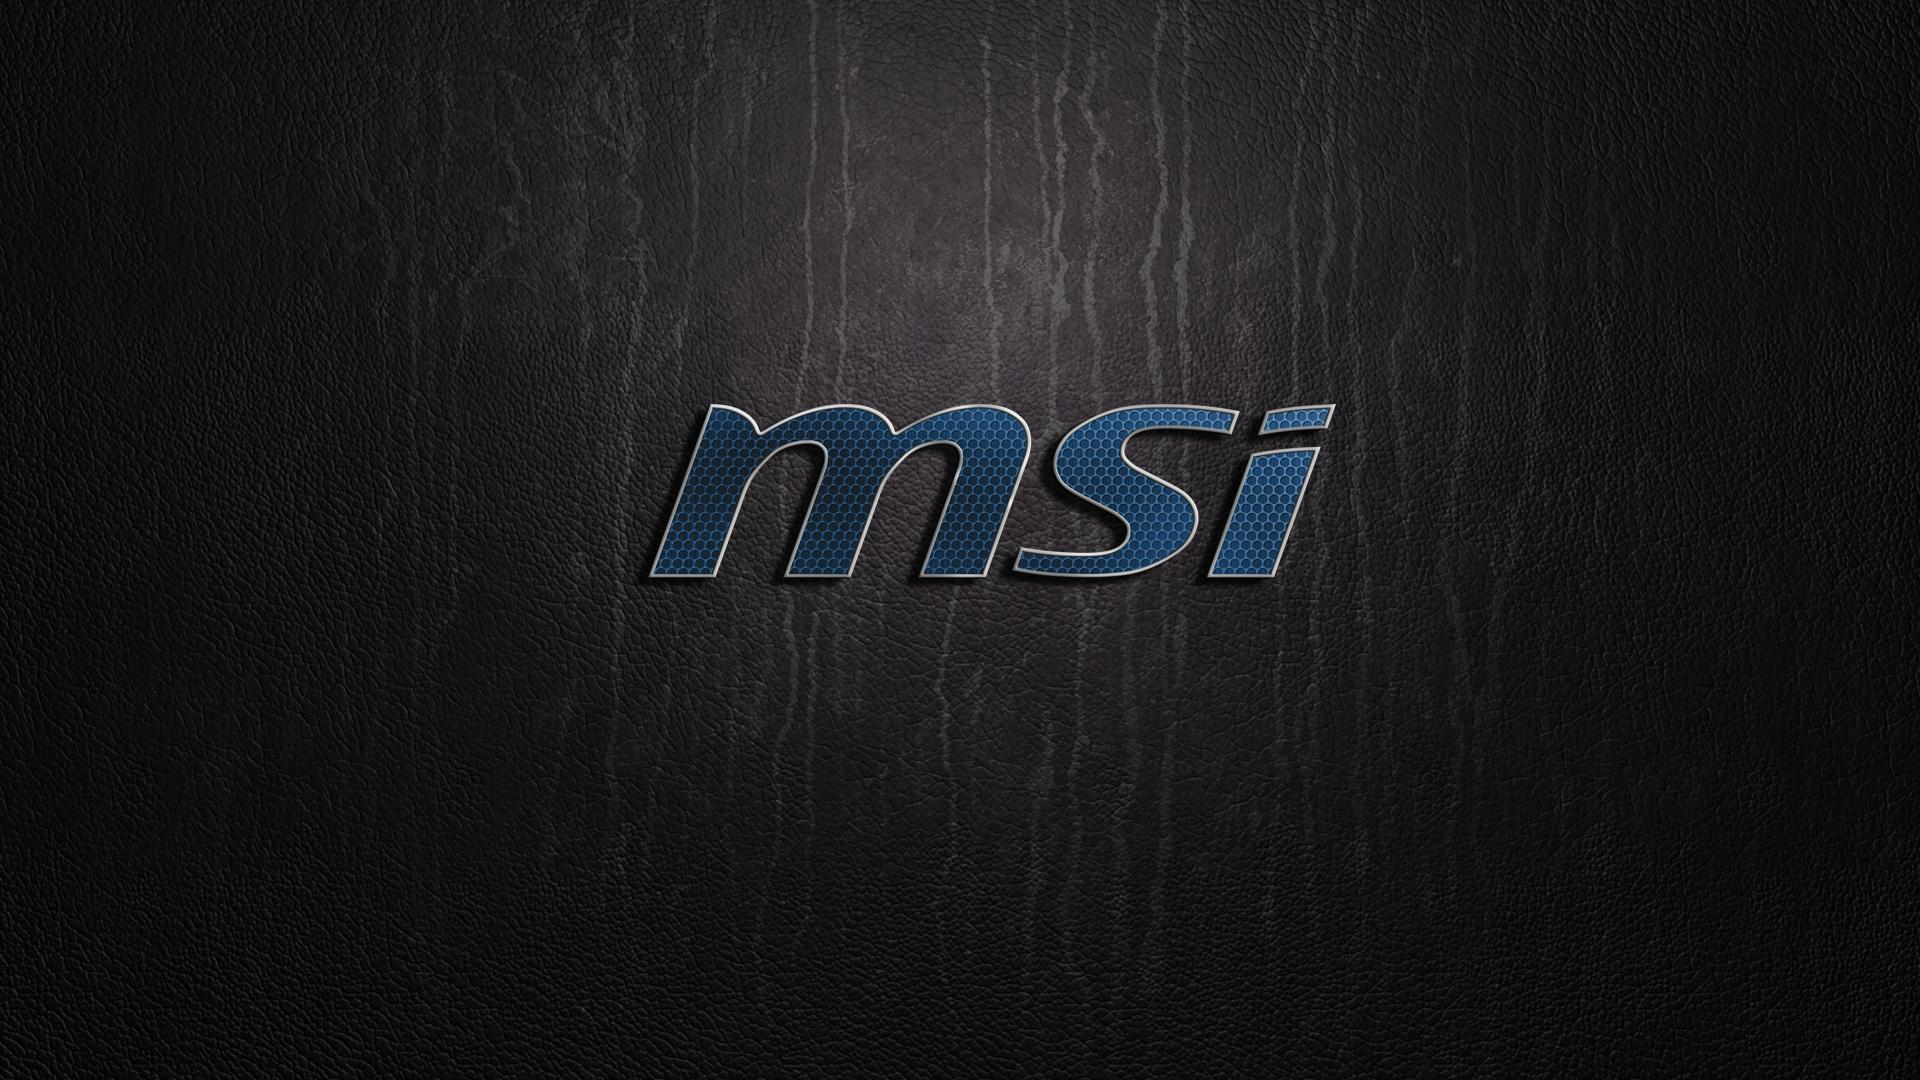 Msi Wallpapers Wallpaper Cave